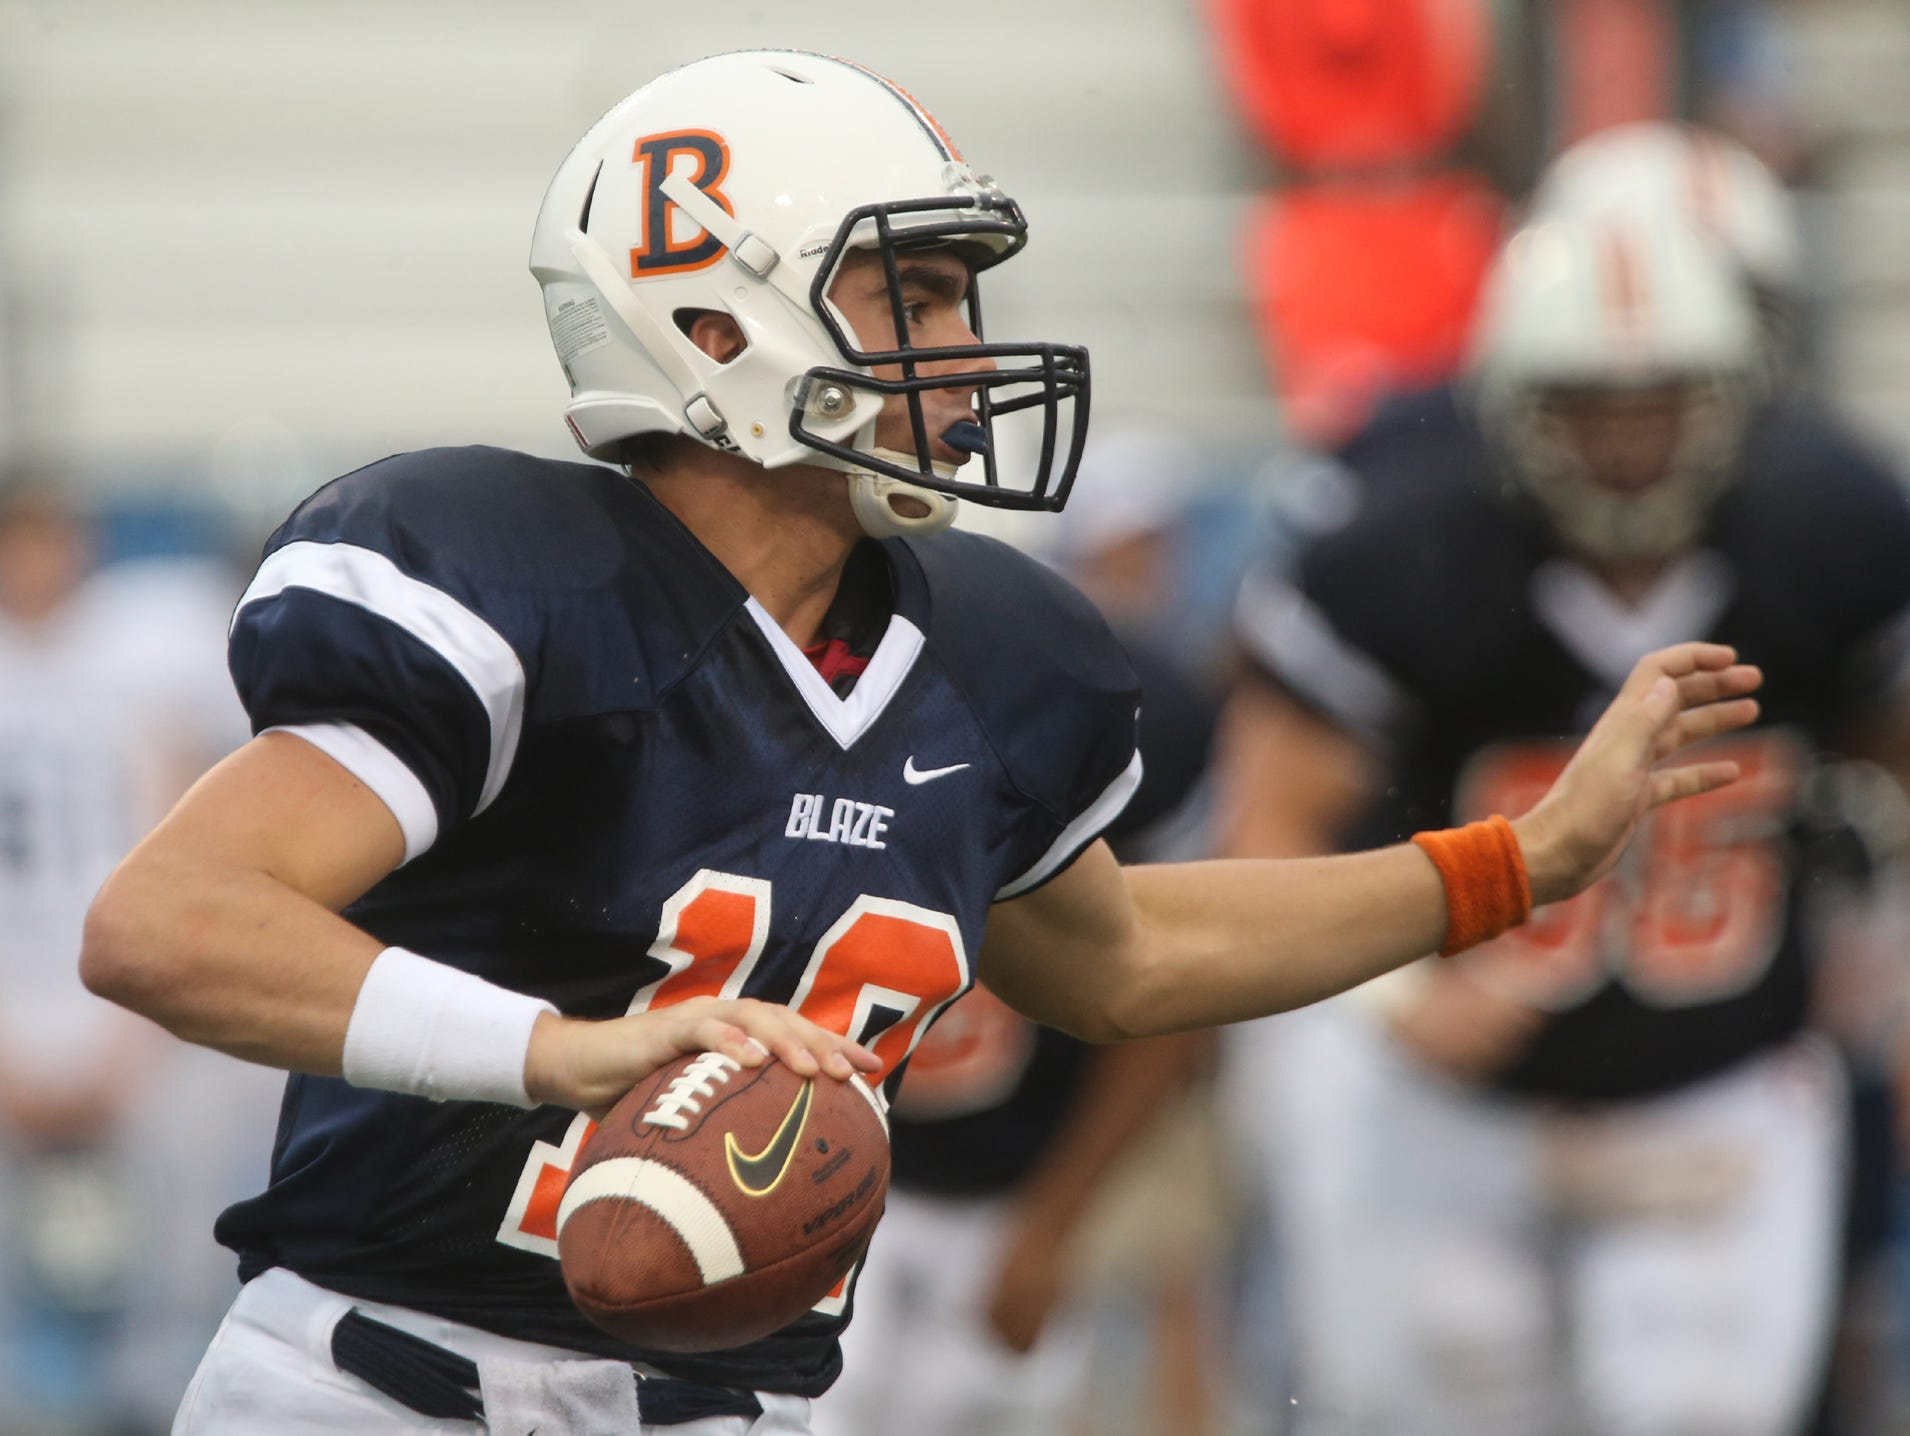 Blackman's quaterback Miller Armstrong scrambles in the backfield looking for a receiver during the first game of the Middle Tennessee Classic against Chalkville at MTSU's Floyd Stadium Saturday, Aug. 22, 2015.